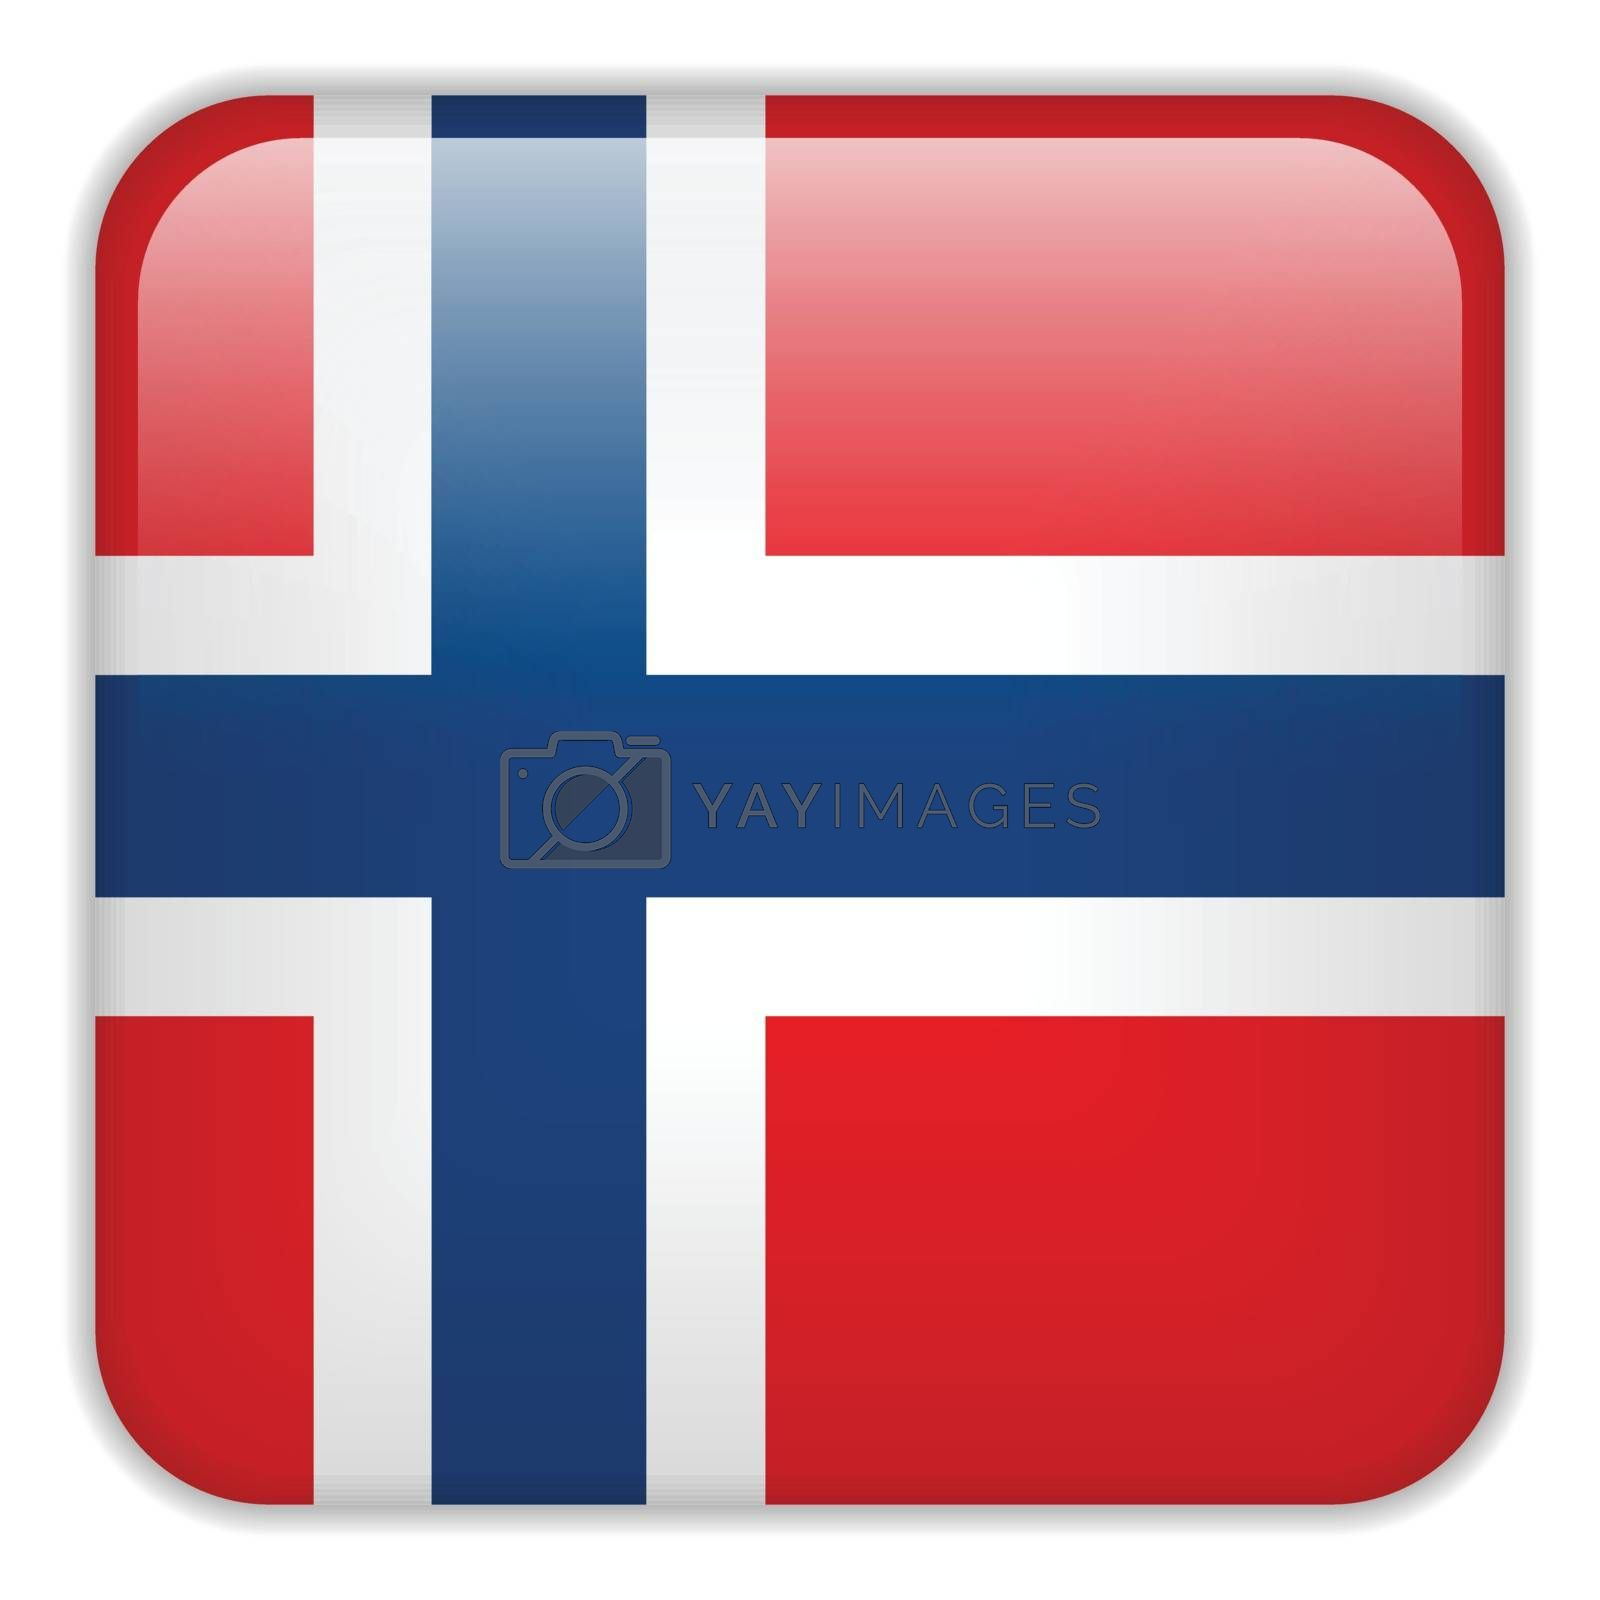 Vector - Norway Flag Smartphone Application Square Buttons